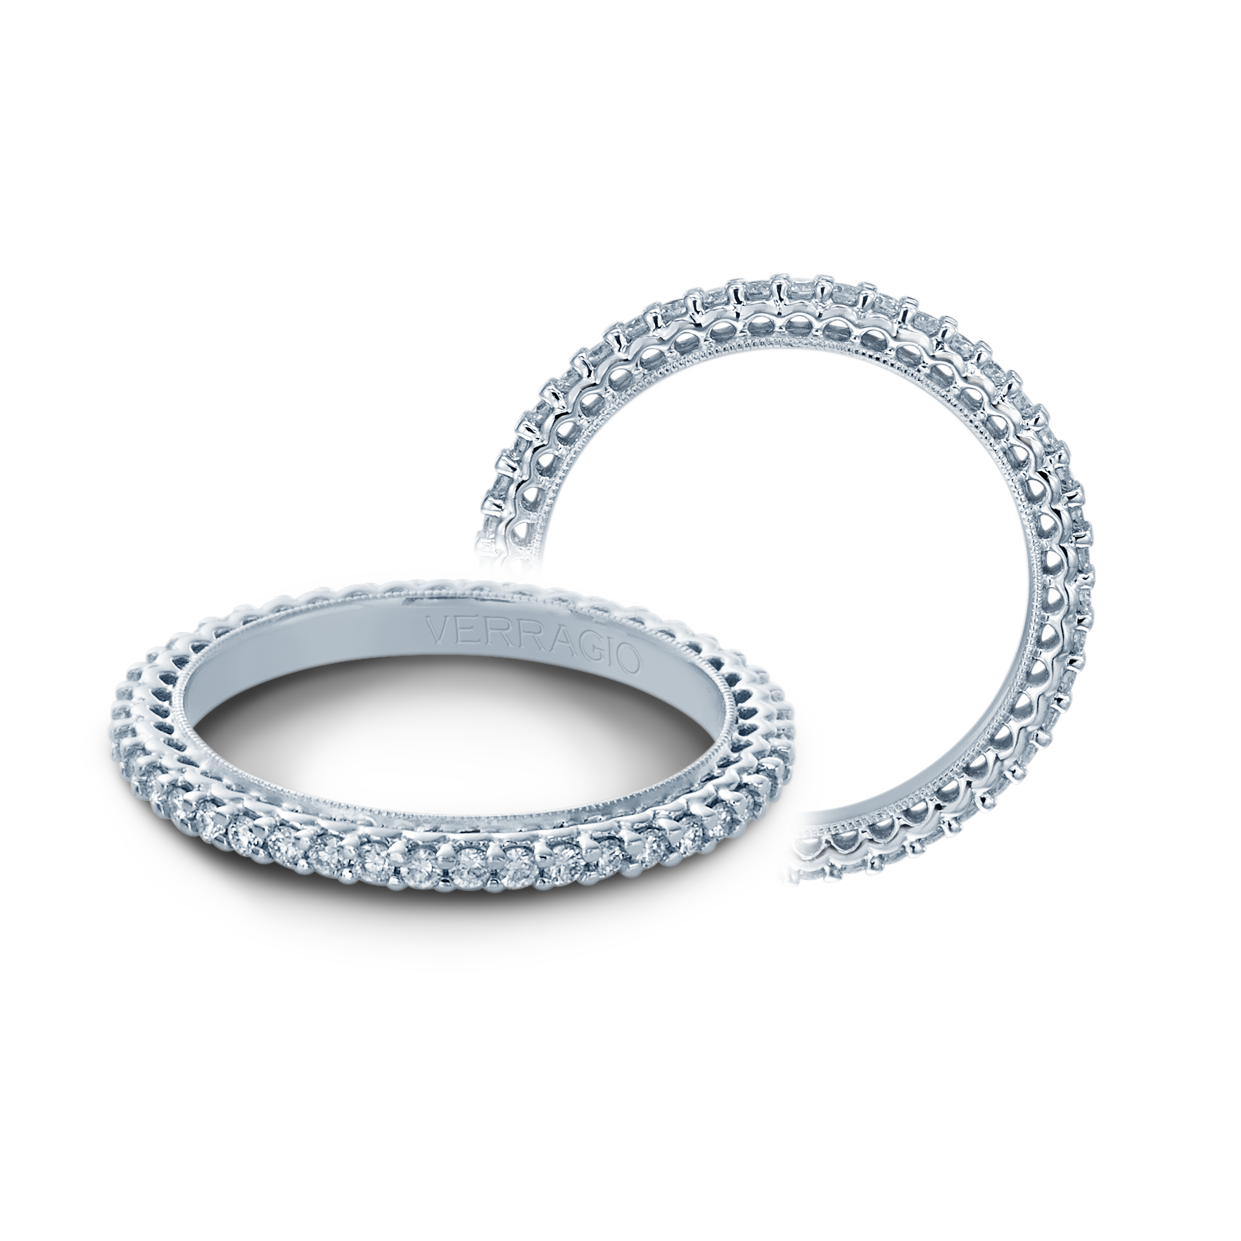 Verragio V-920 14k White Gold Wedding Band